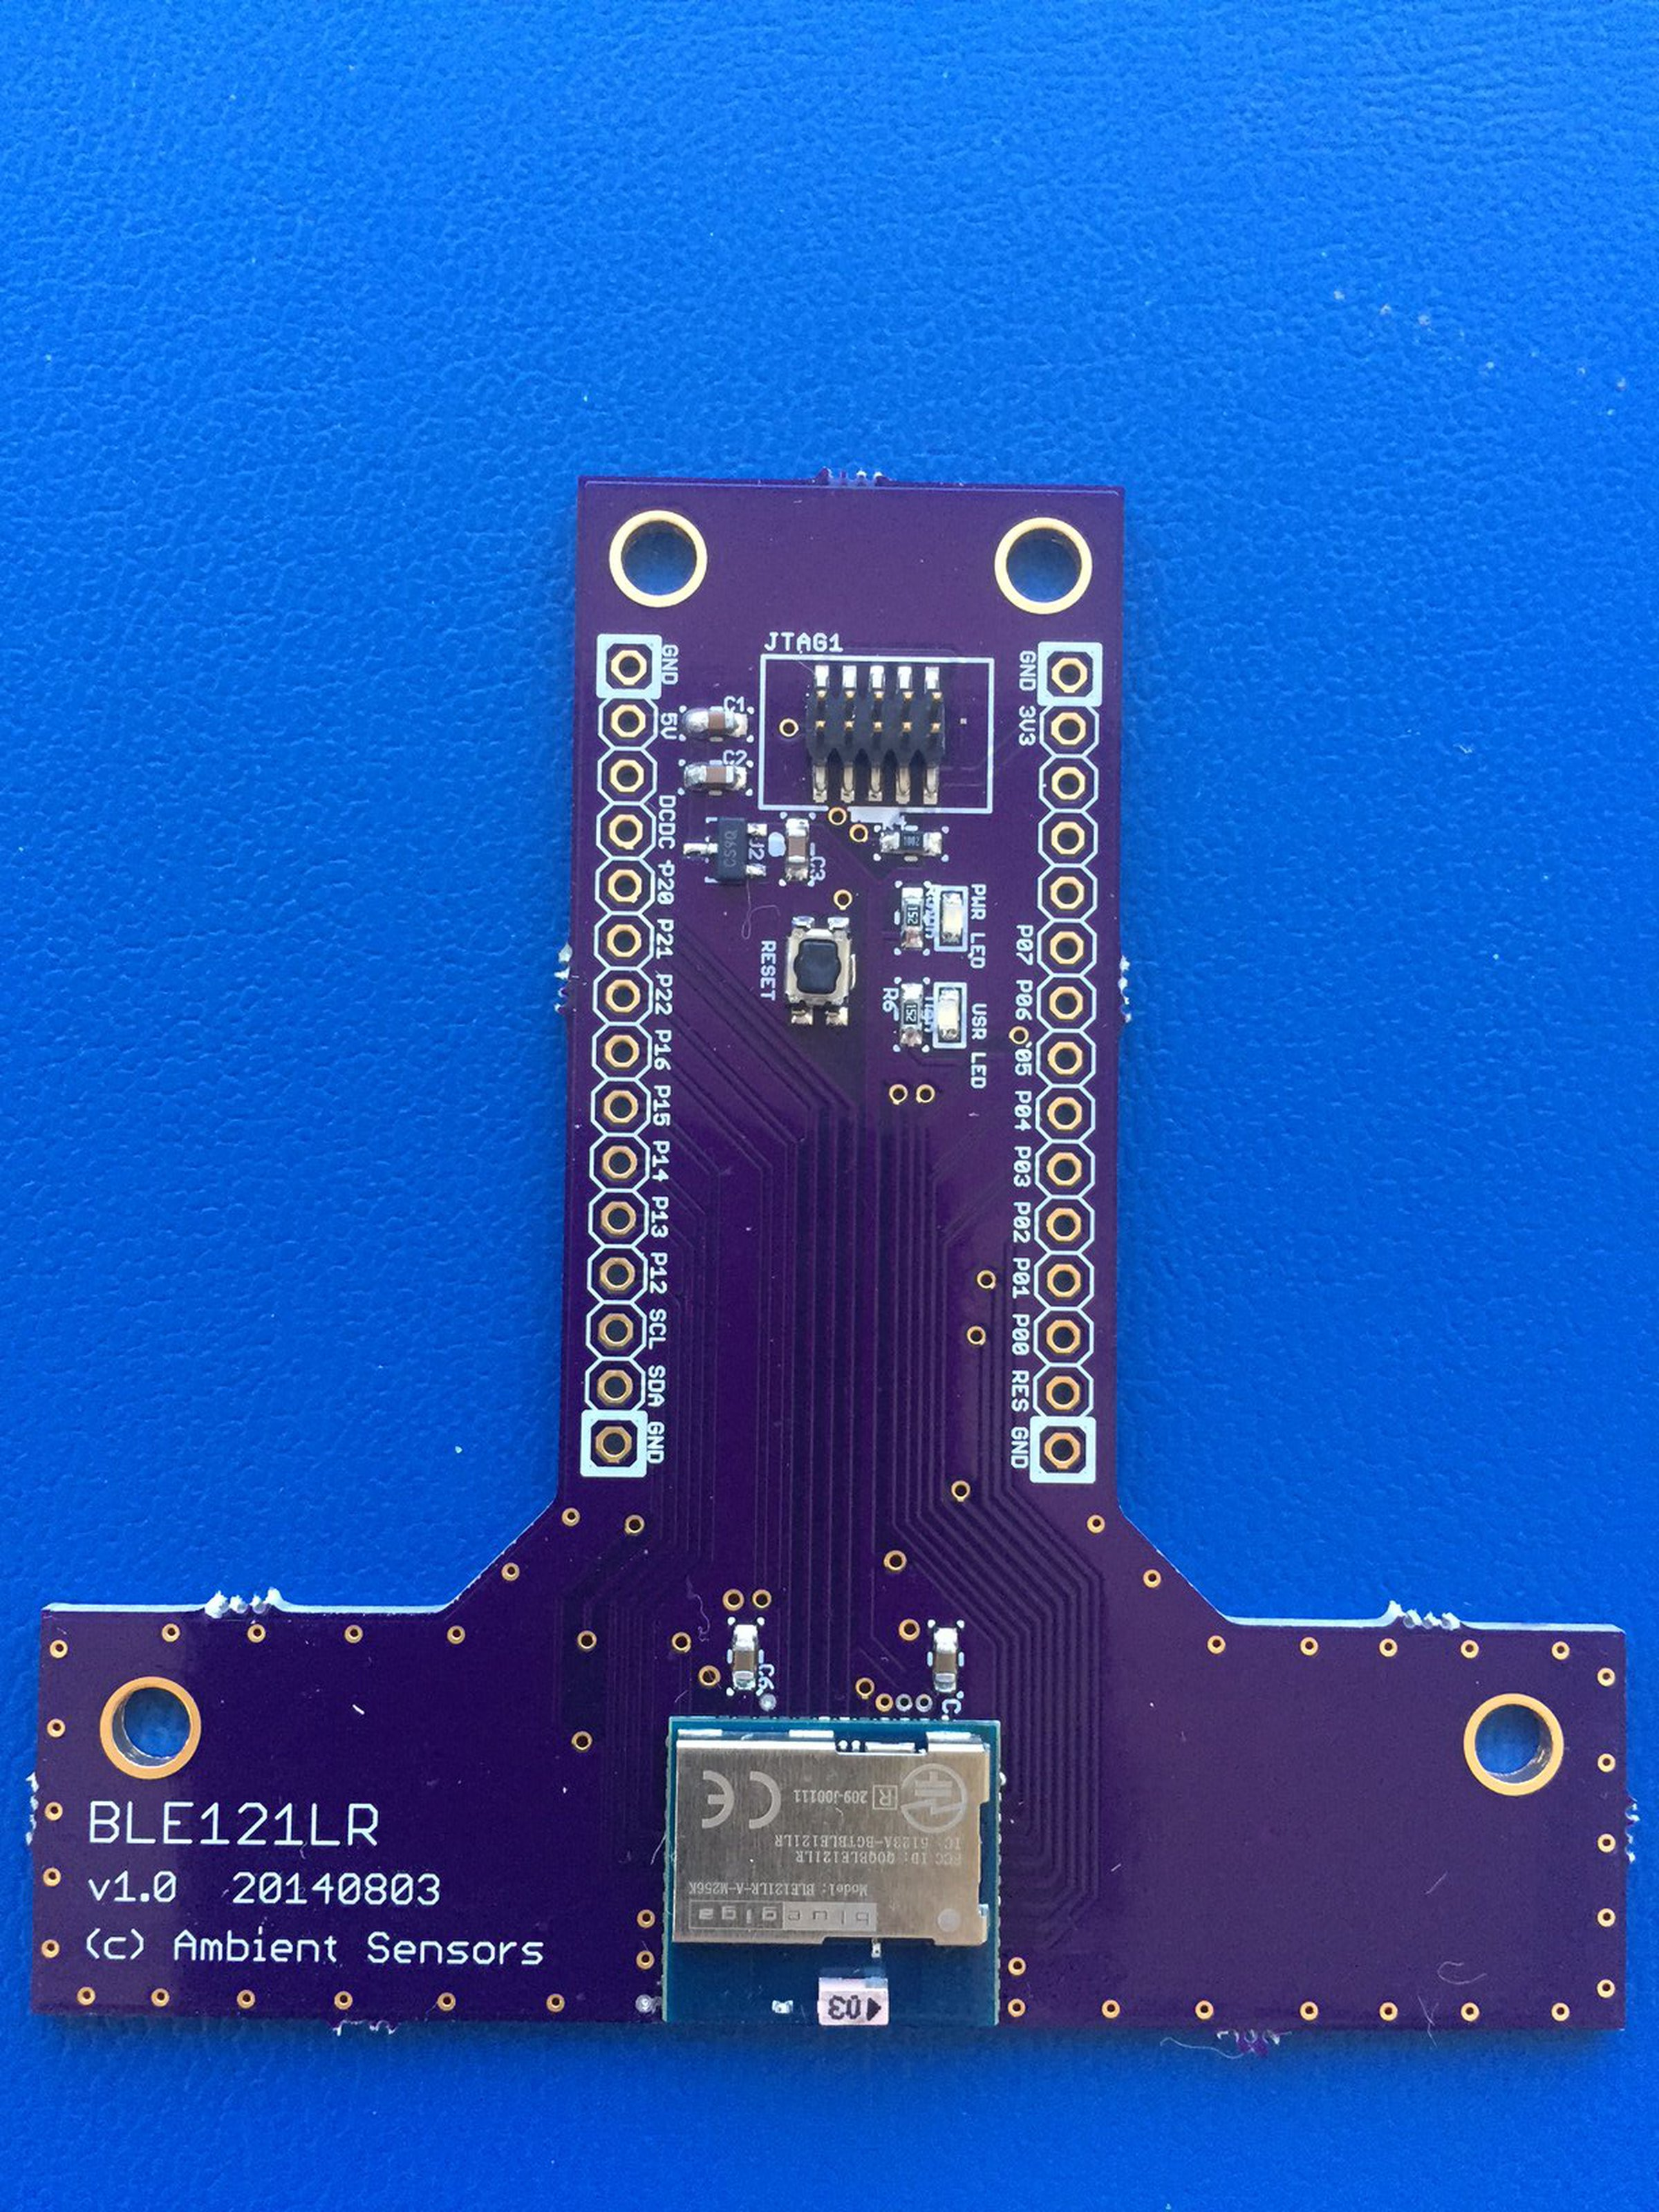 Browse Products By Ambient Sensors On Tindie The Lr Series Circuit Electronics Sale Ble121lr Long Range Bluetooth Low Energy Breakout